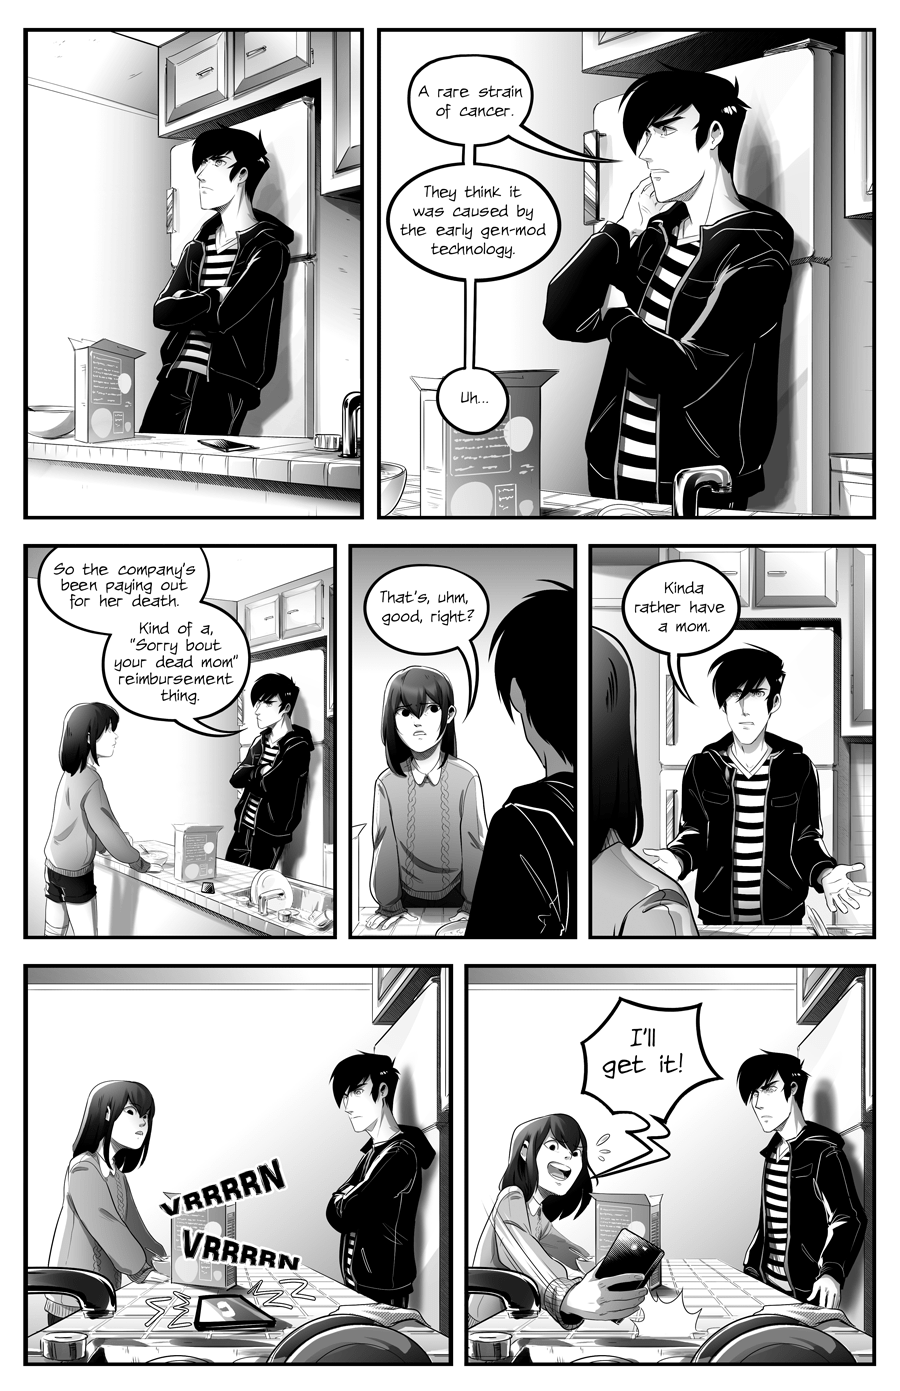 Centralia 2050 chapter 5 page 23